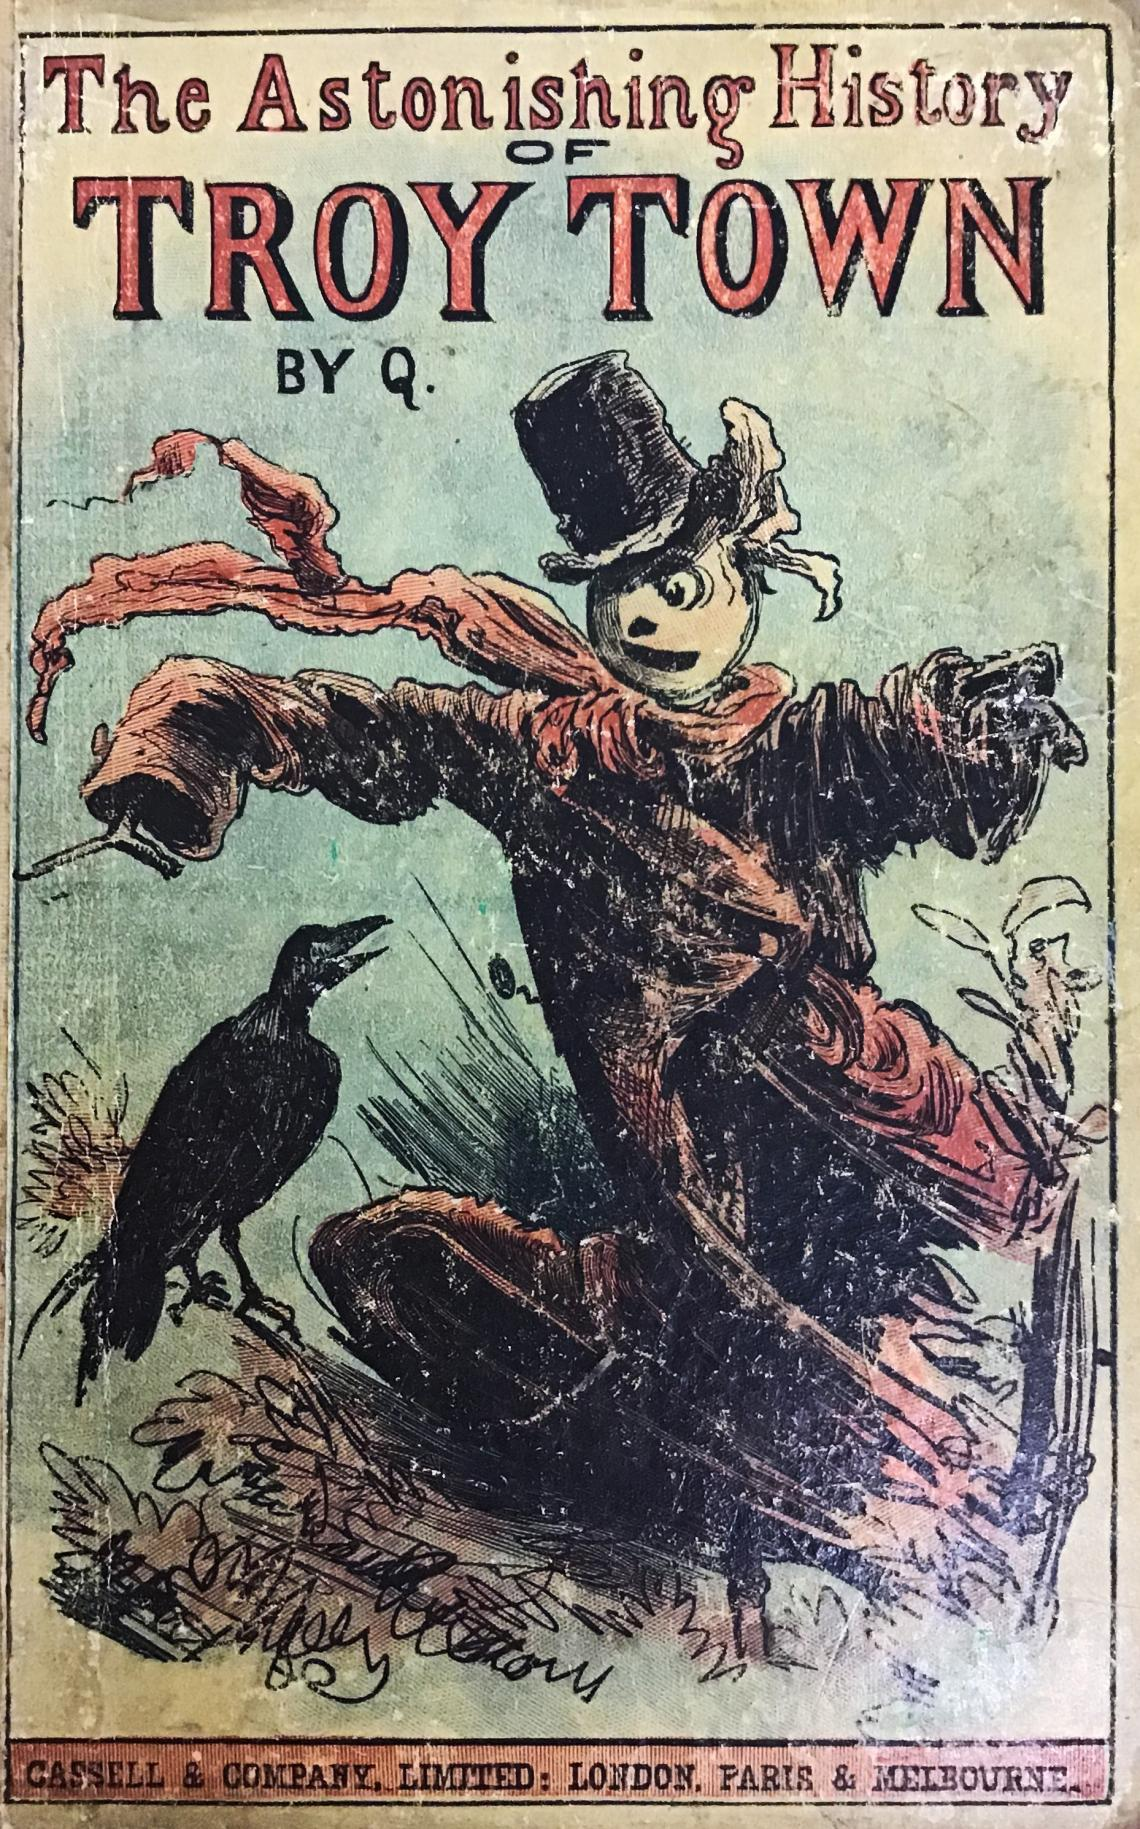 Troy Town cover showing scarecrow